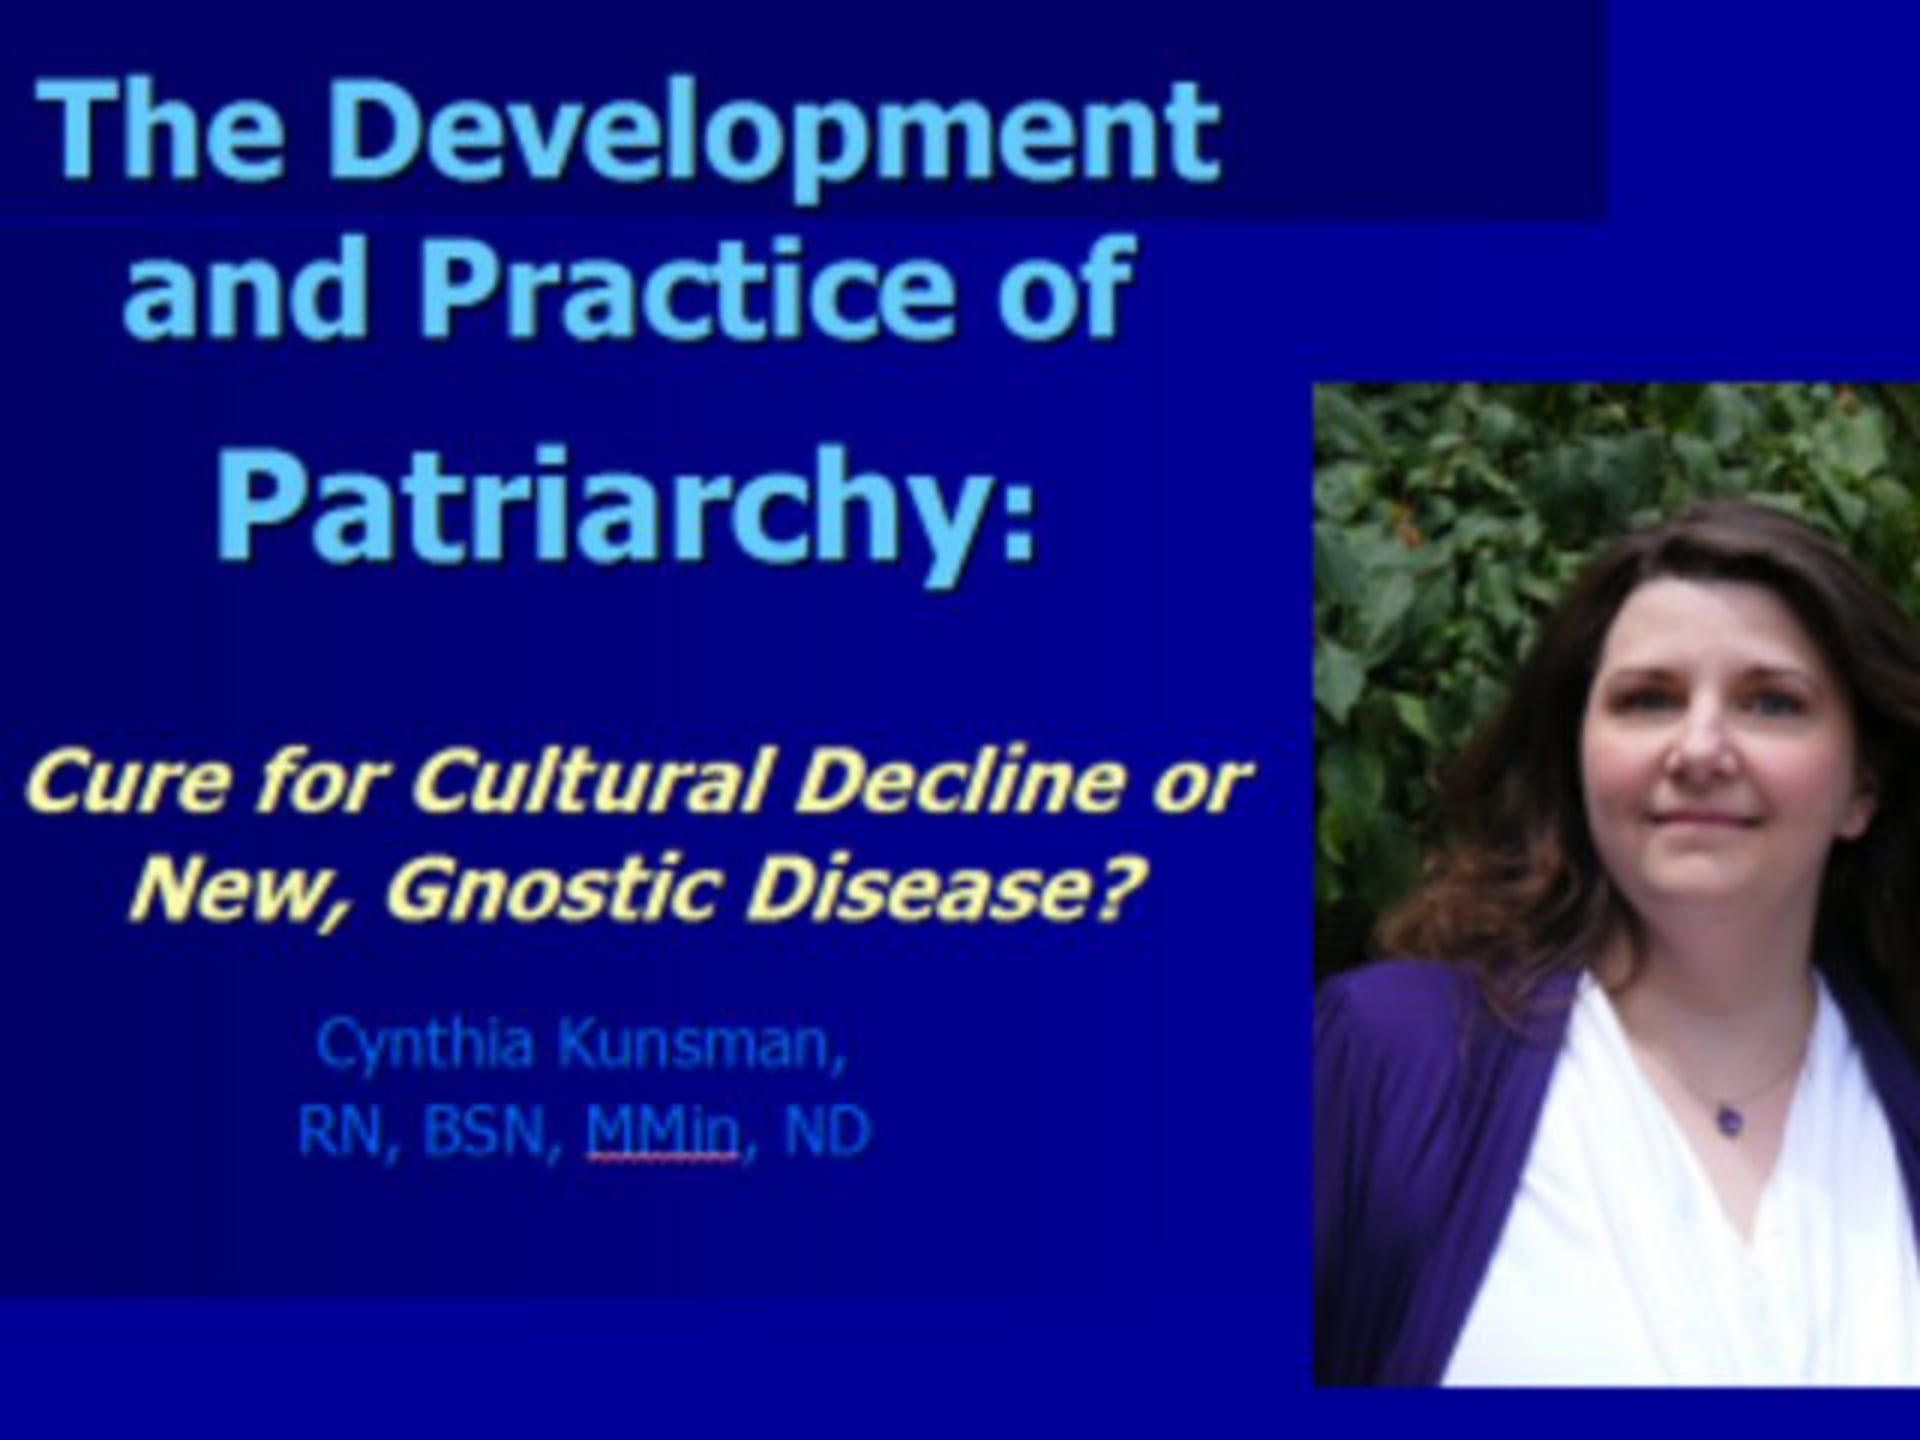 """Cynthia Kunsman's Controvertial """"Development and Practice of Patriarchy"""" Workshop, 2008"""